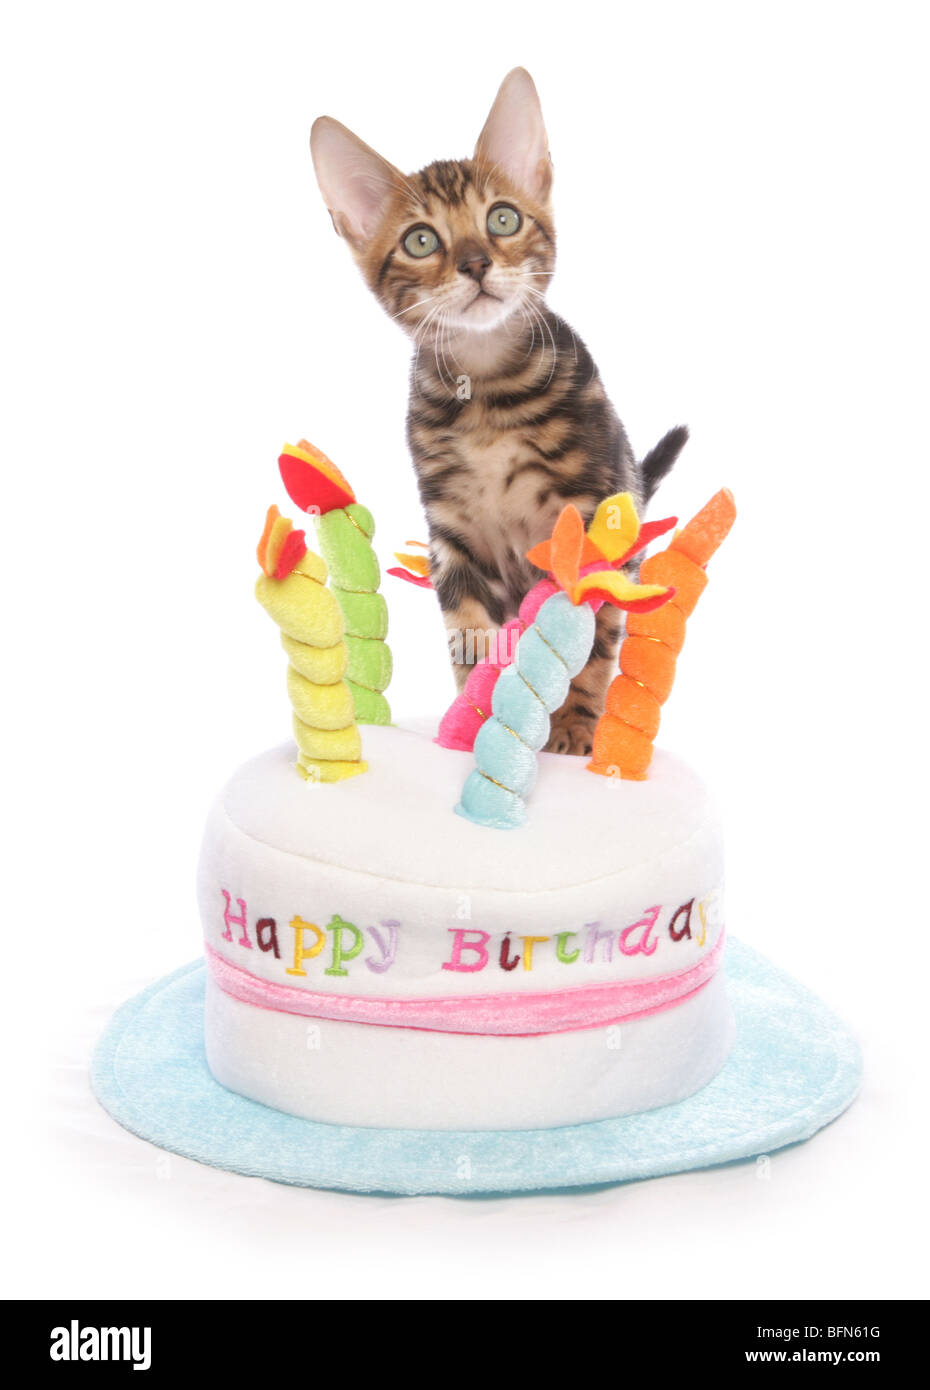 Birthday Cake Cut Out Stock Photos Amp Birthday Cake Cut Out